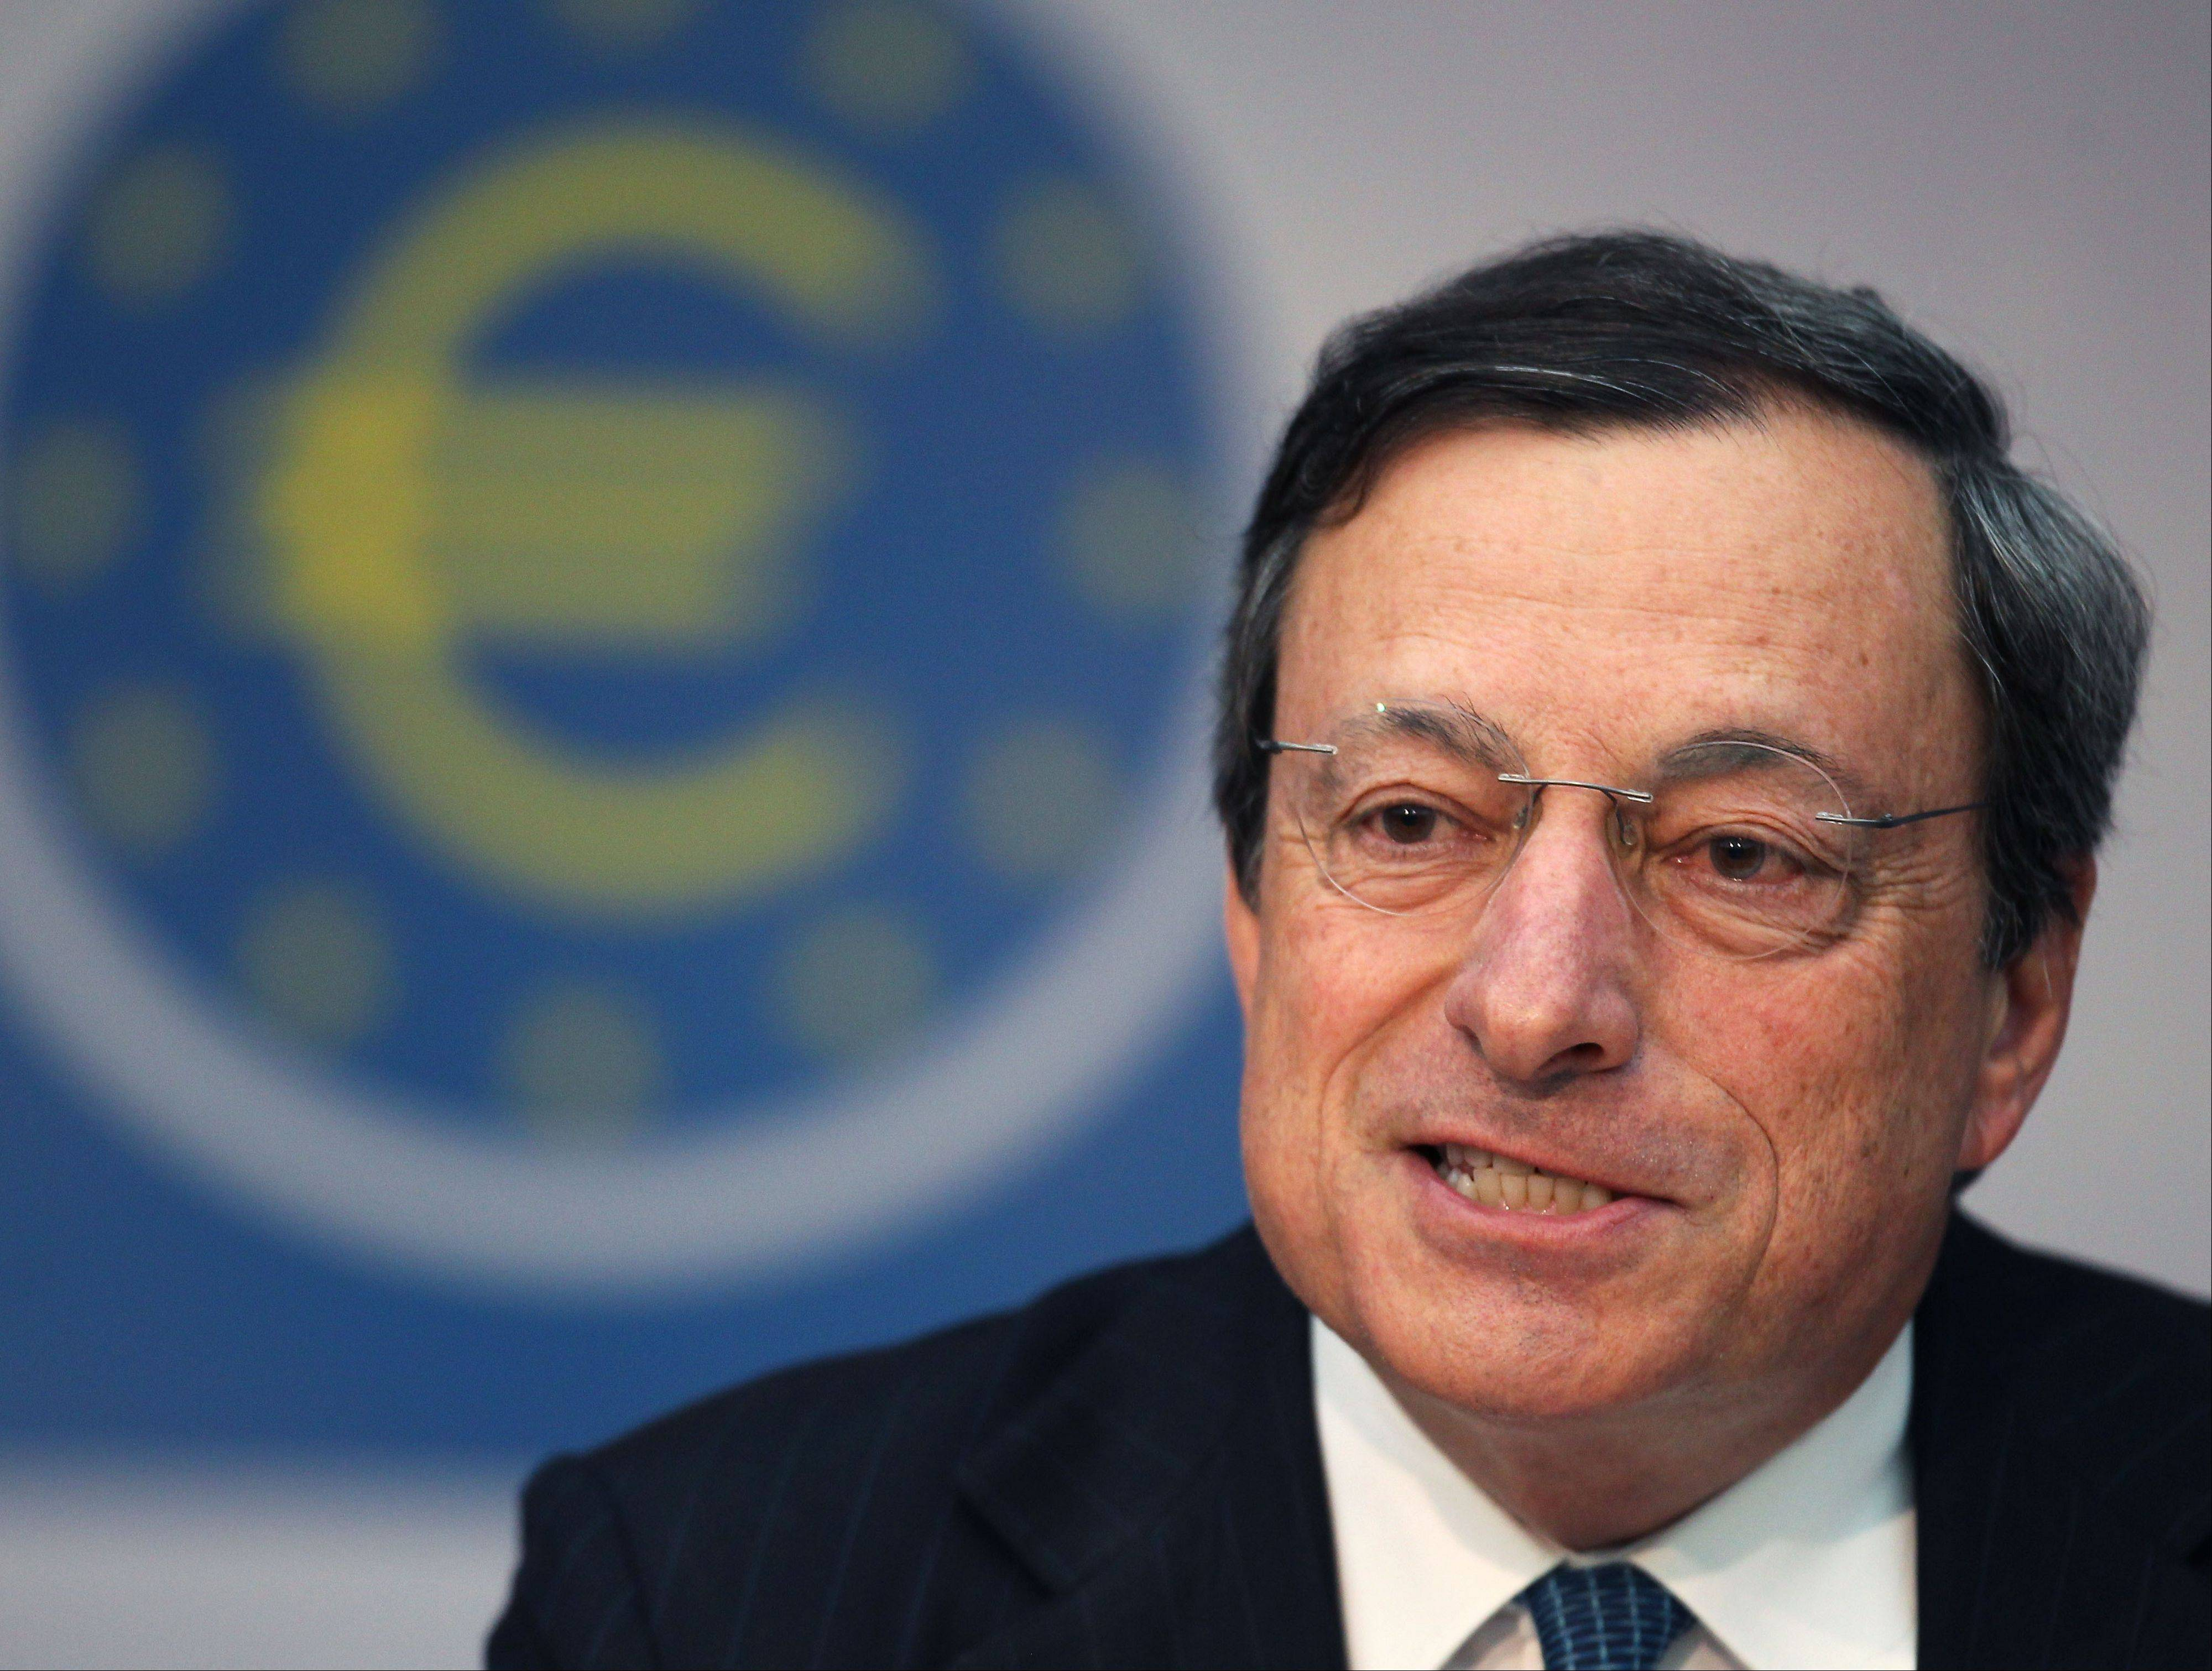 European Central Bank Mario Draghi gets another chance Thursday, Sept. 6, 2012. to spell out how the bank intends to rescue the 17 countries that use the euro from financial disaster. Expectations have been high since late July when the ECB head vowed to do �whatever it takes� to hold the eurozone together.